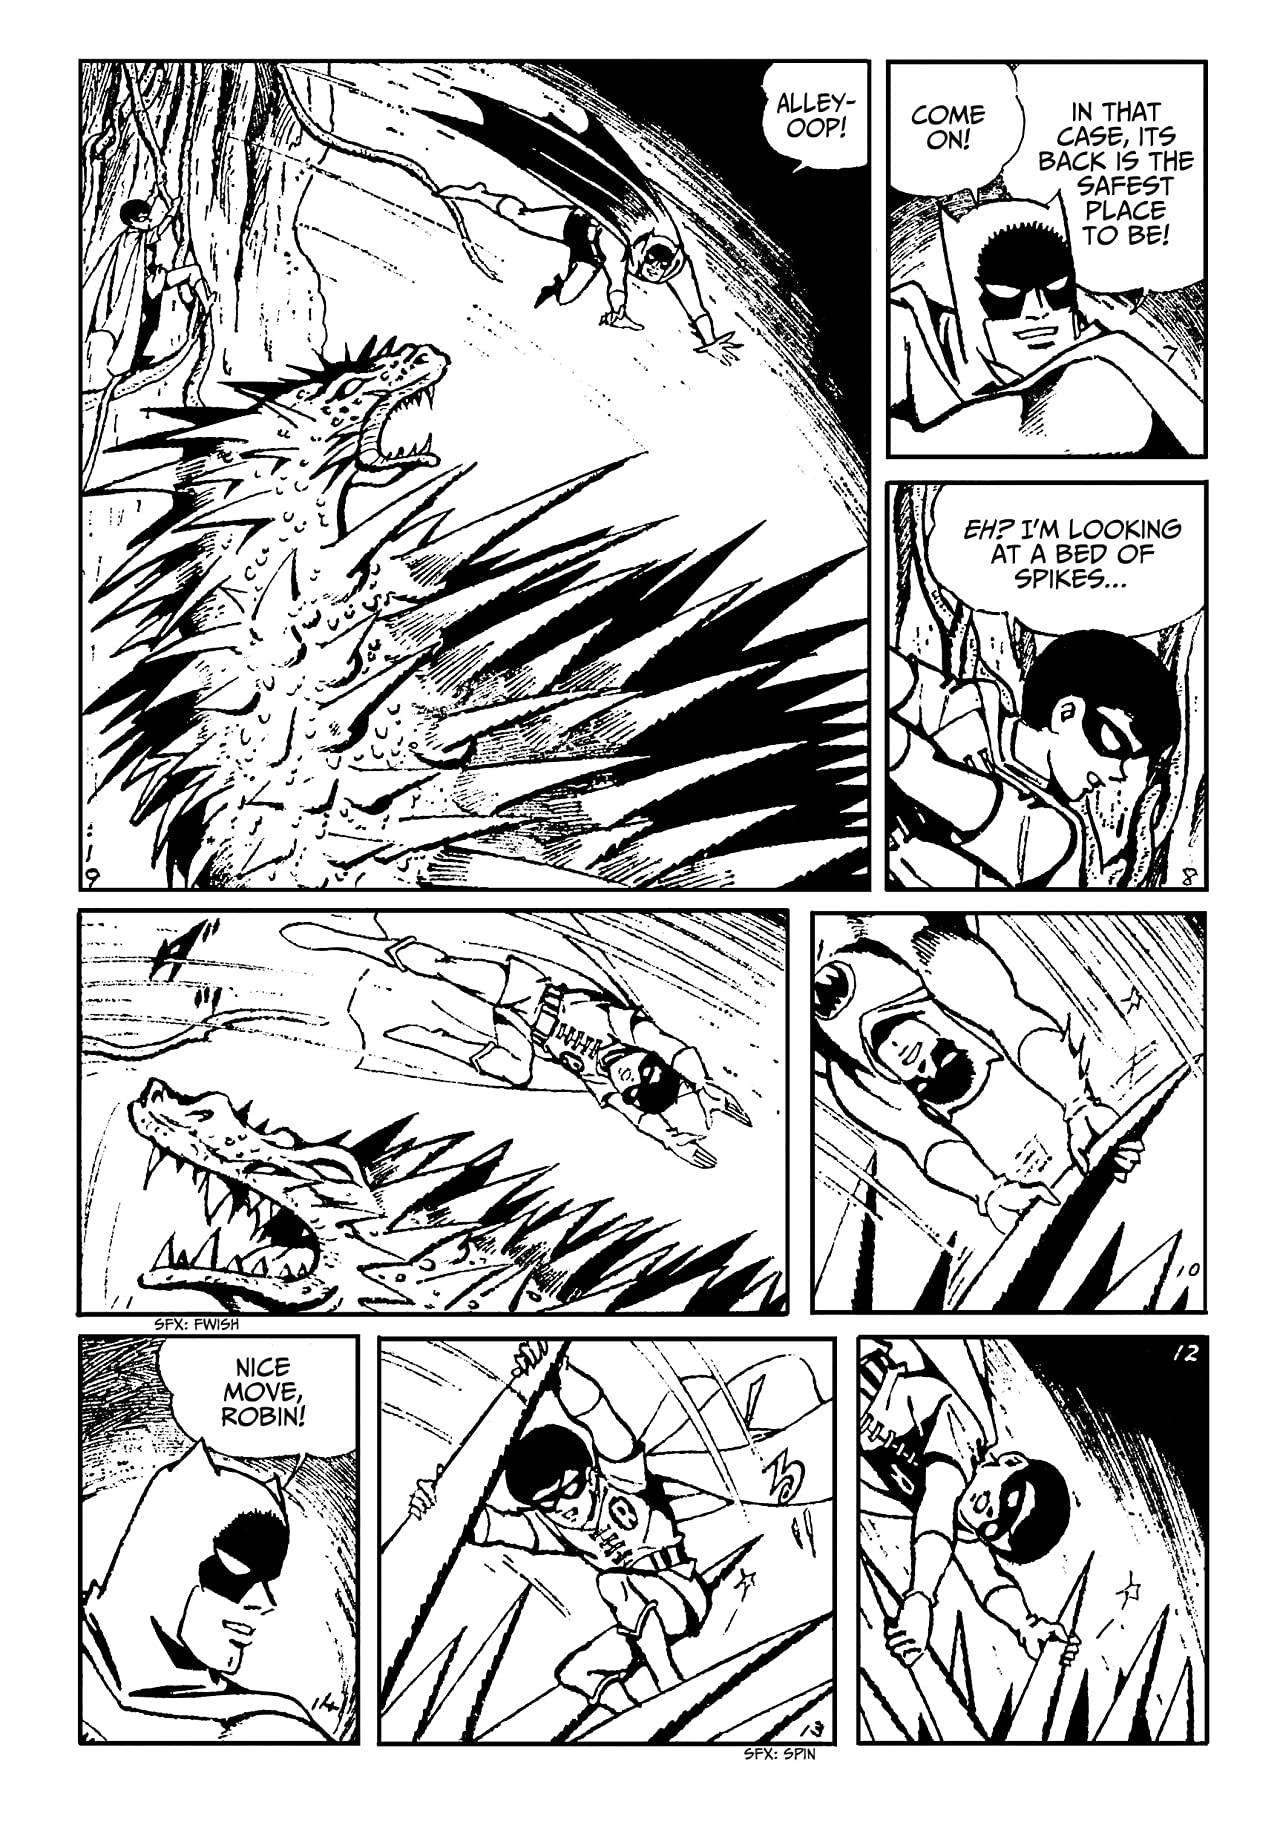 Batman: The Jiro Kuwata Batmanga #53